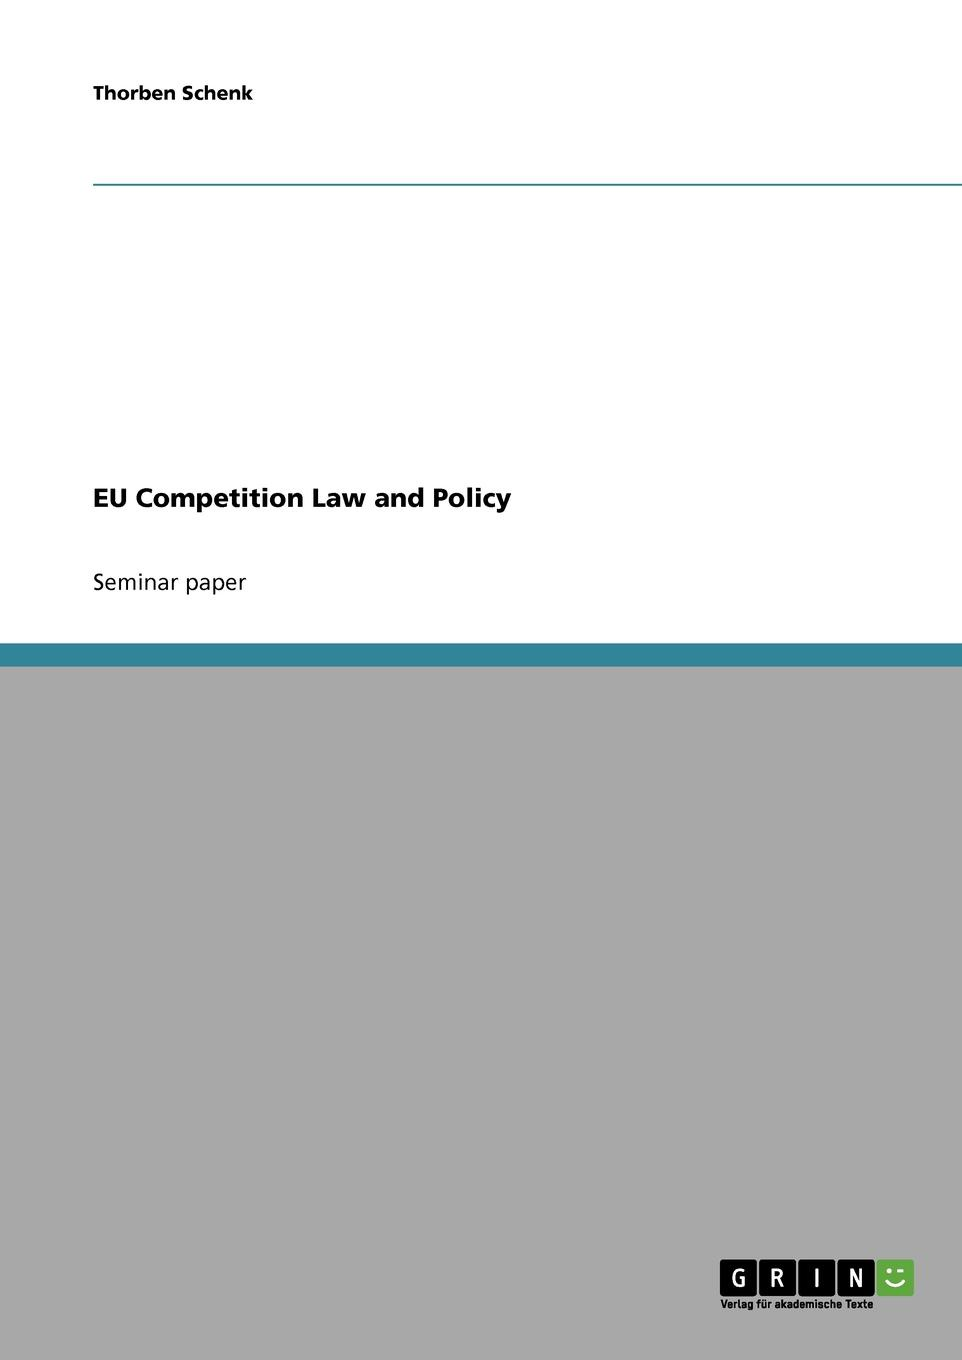 Thorben Schenk EU Competition Law and Policy efficiency and competition